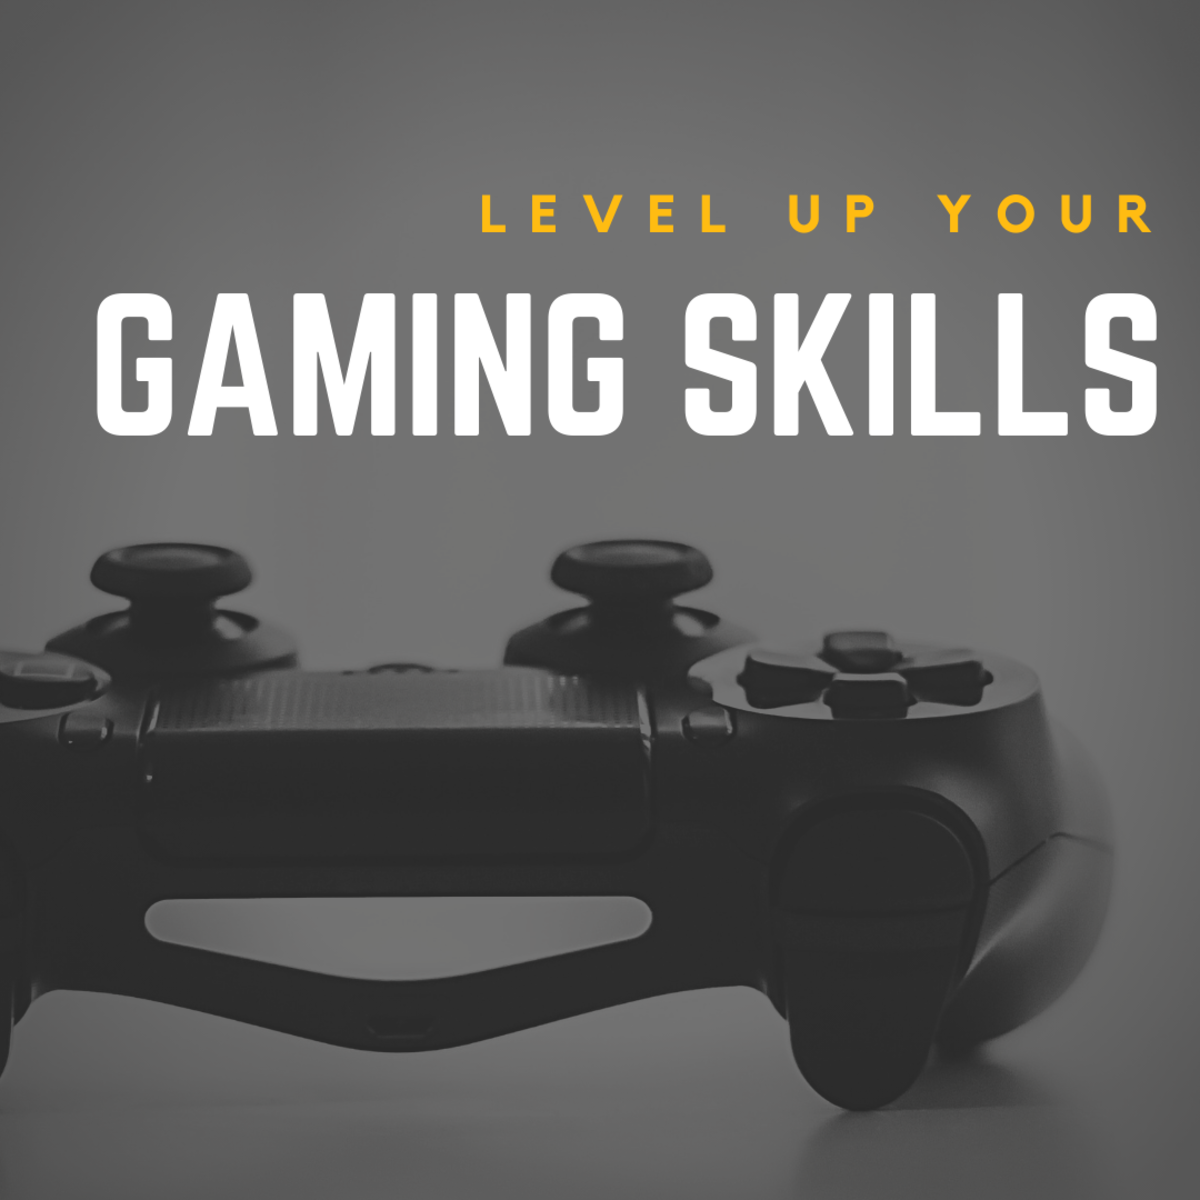 Level up your gaming skills by implementing the tips in this article!